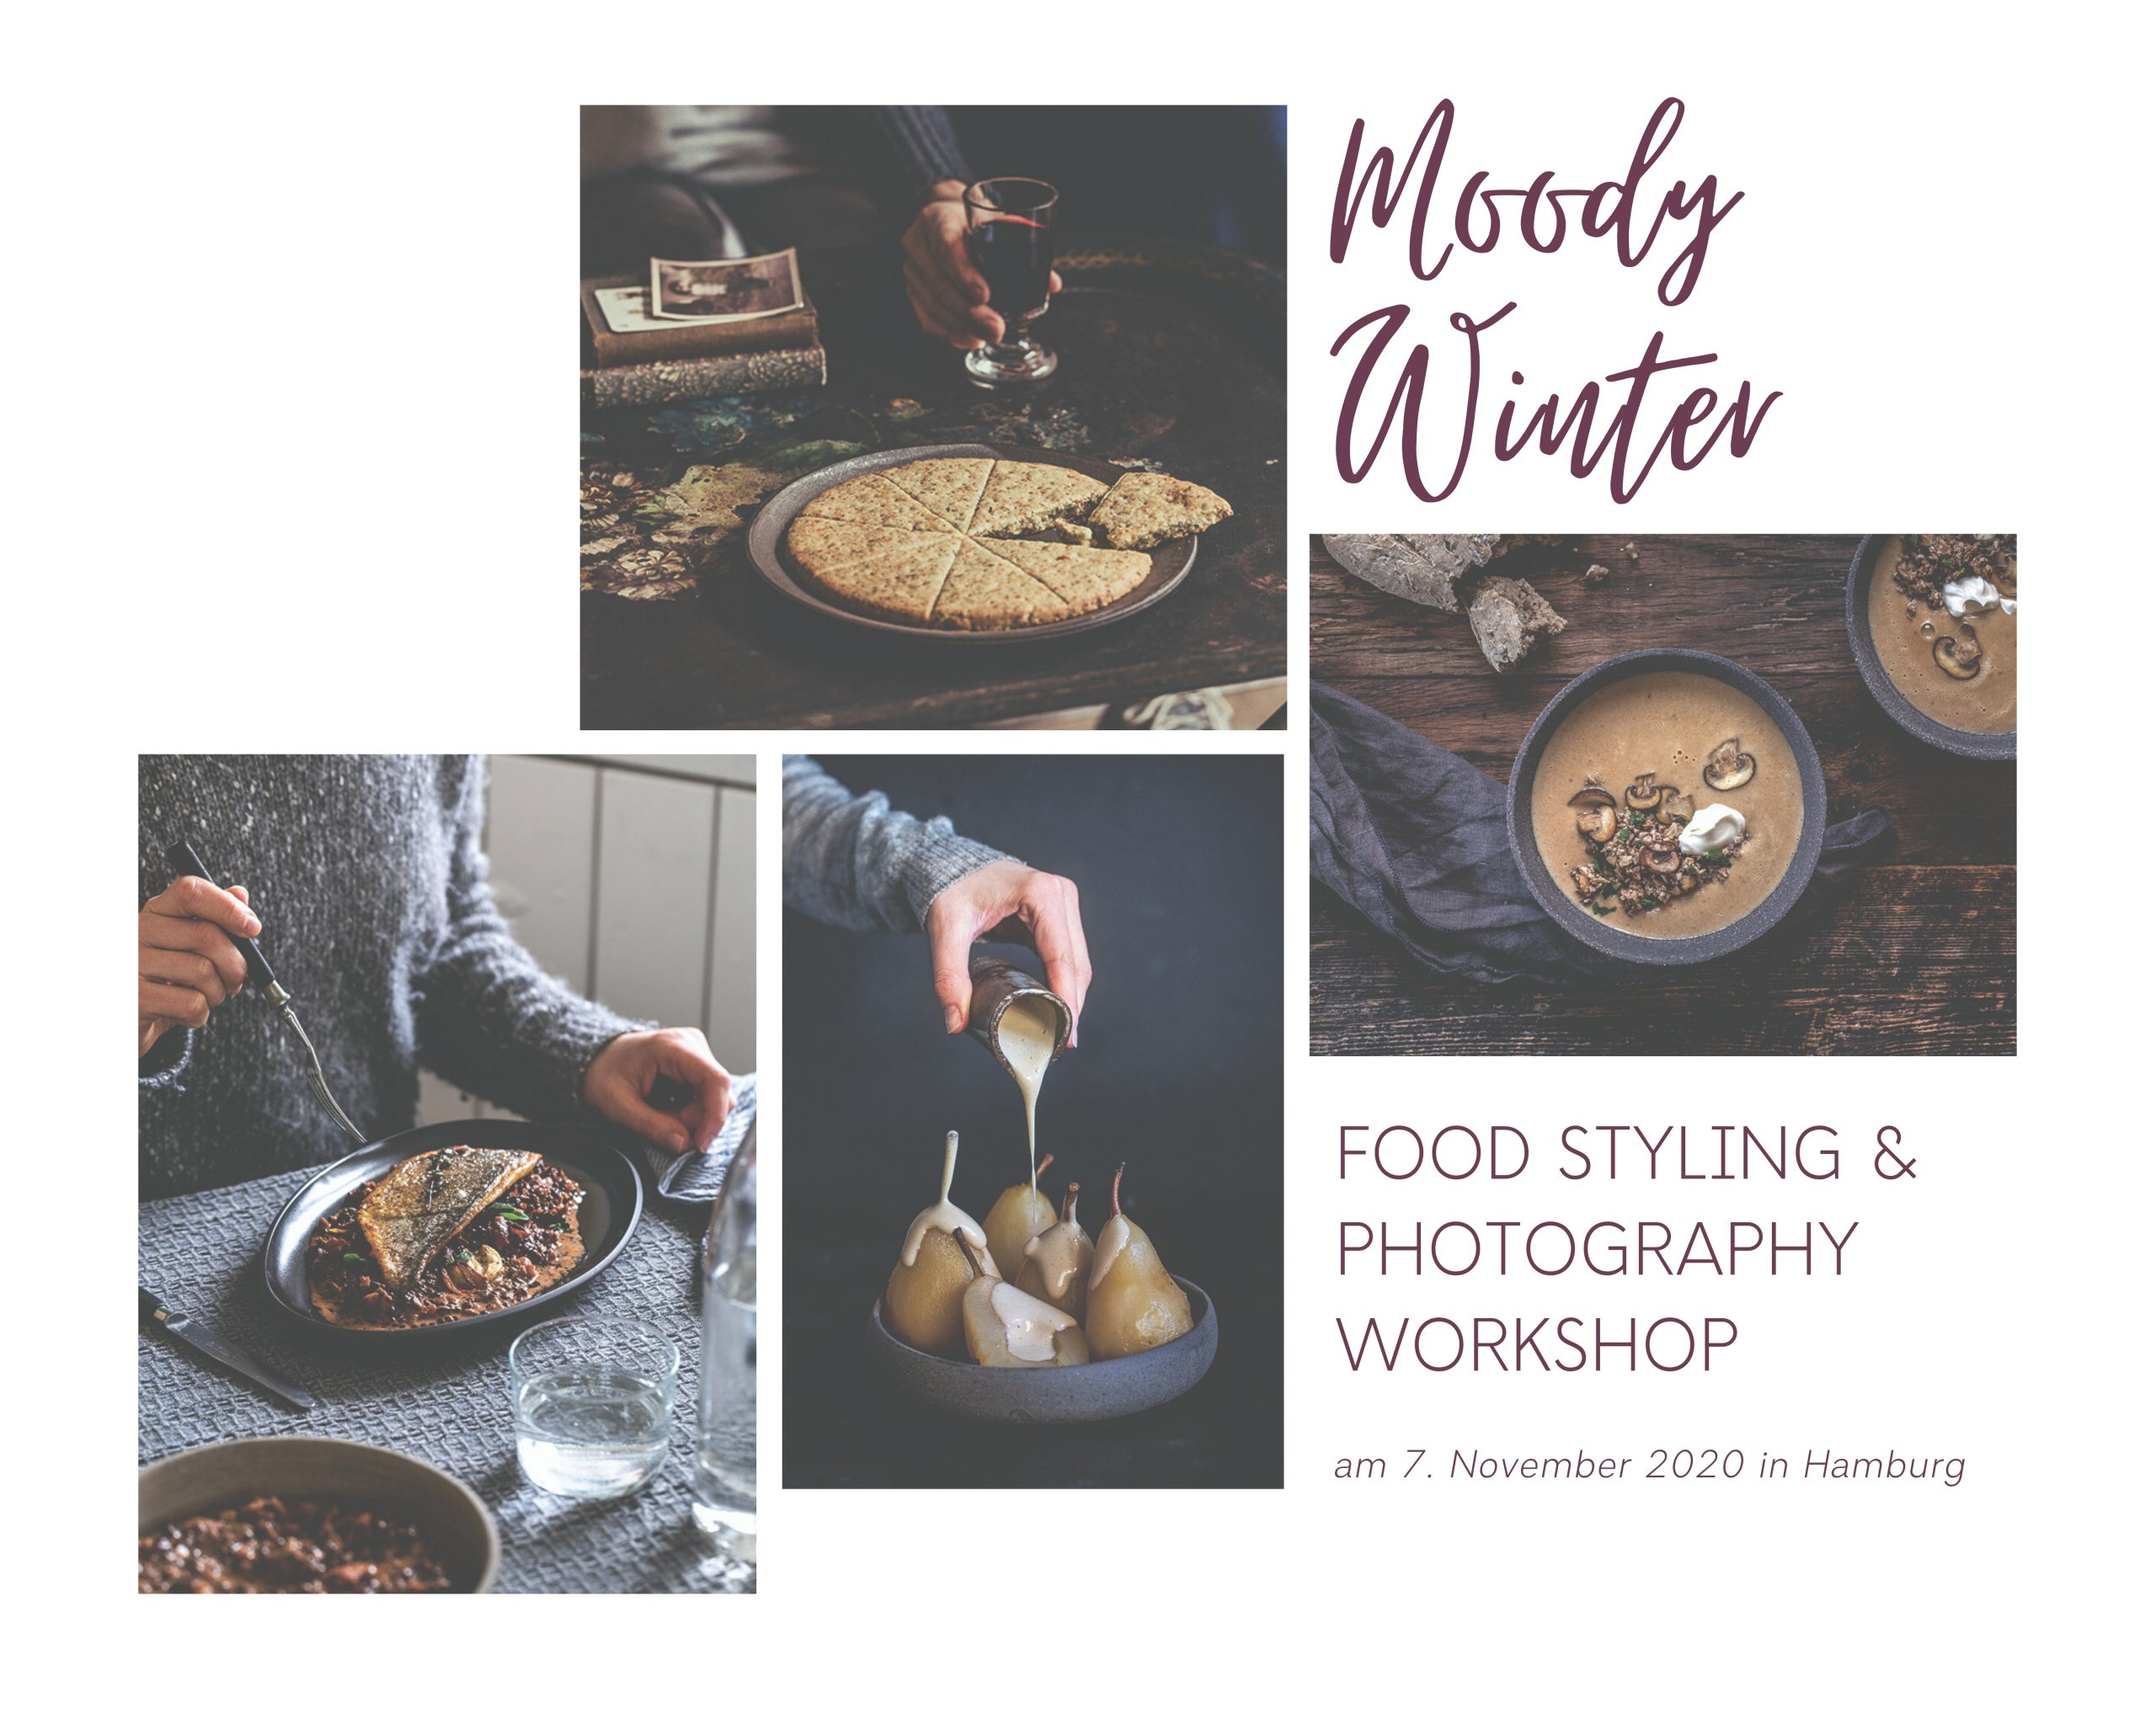 Foodfotografie- und Styling-Workshop in Hamburg